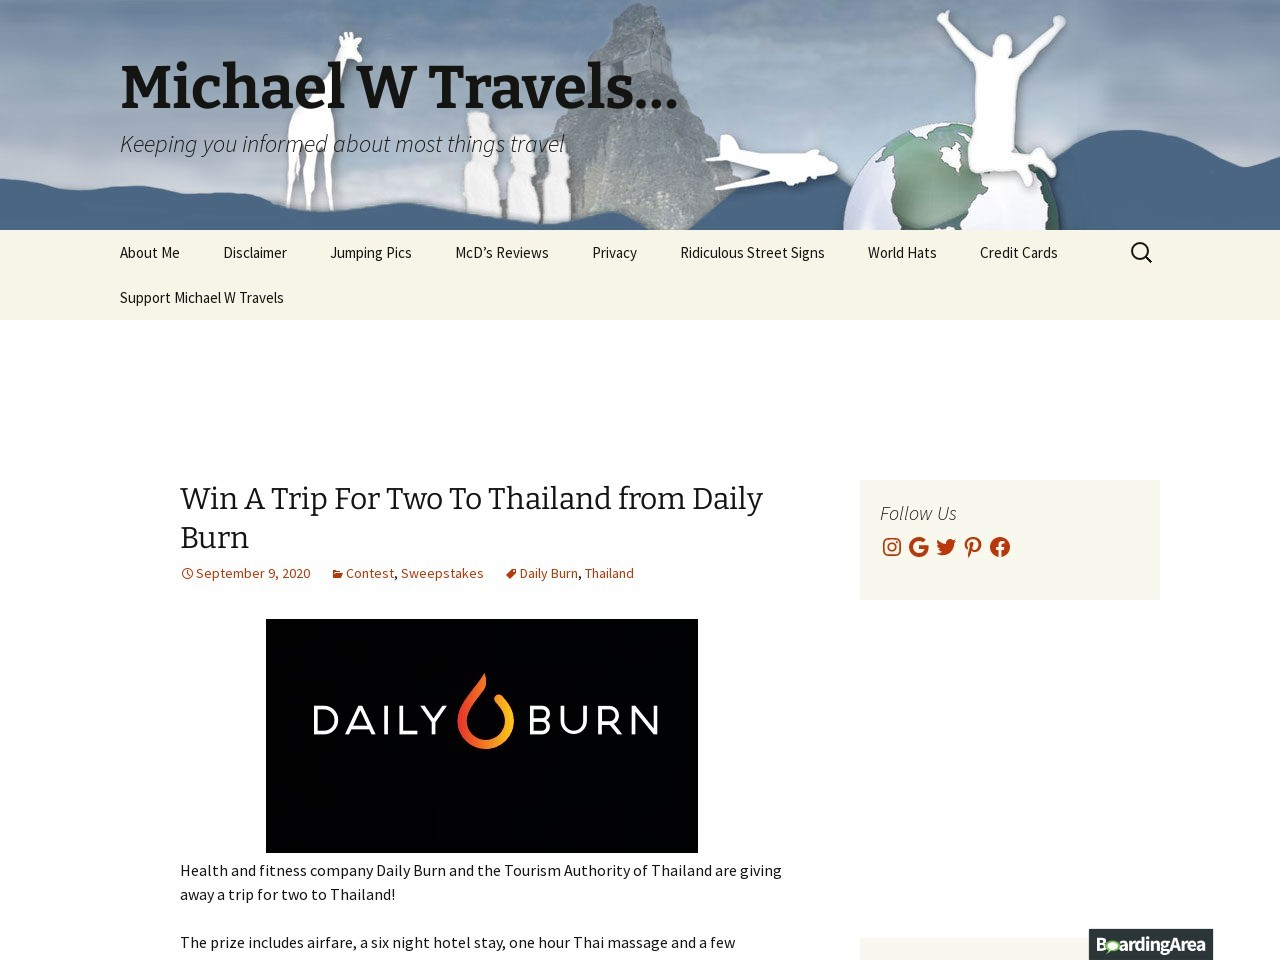 Win A Trip For Two To Thailand from Daily Burn